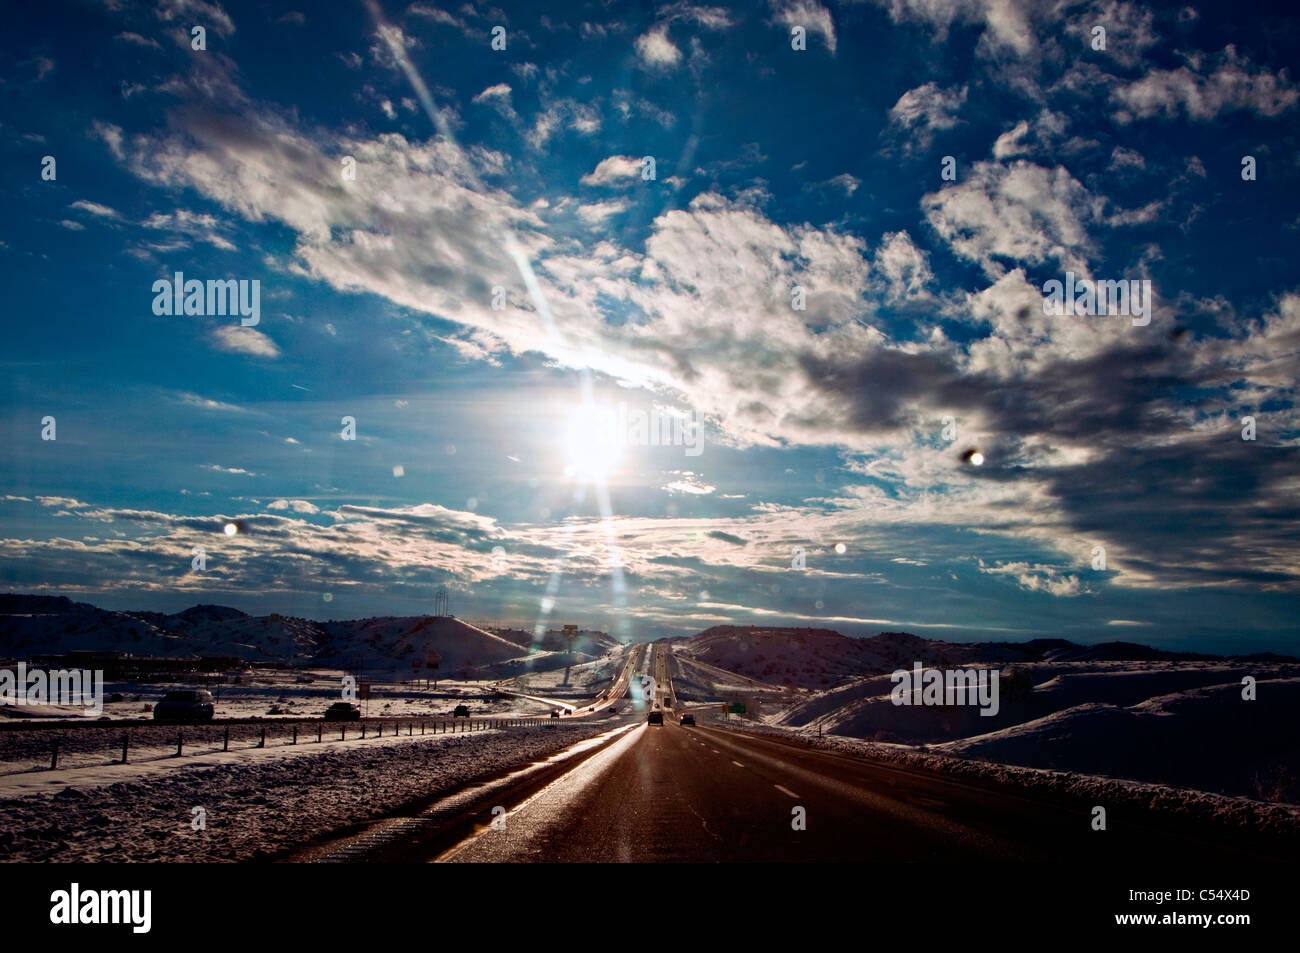 USA, New Mexico, Road going through winter landscape - Stock Image